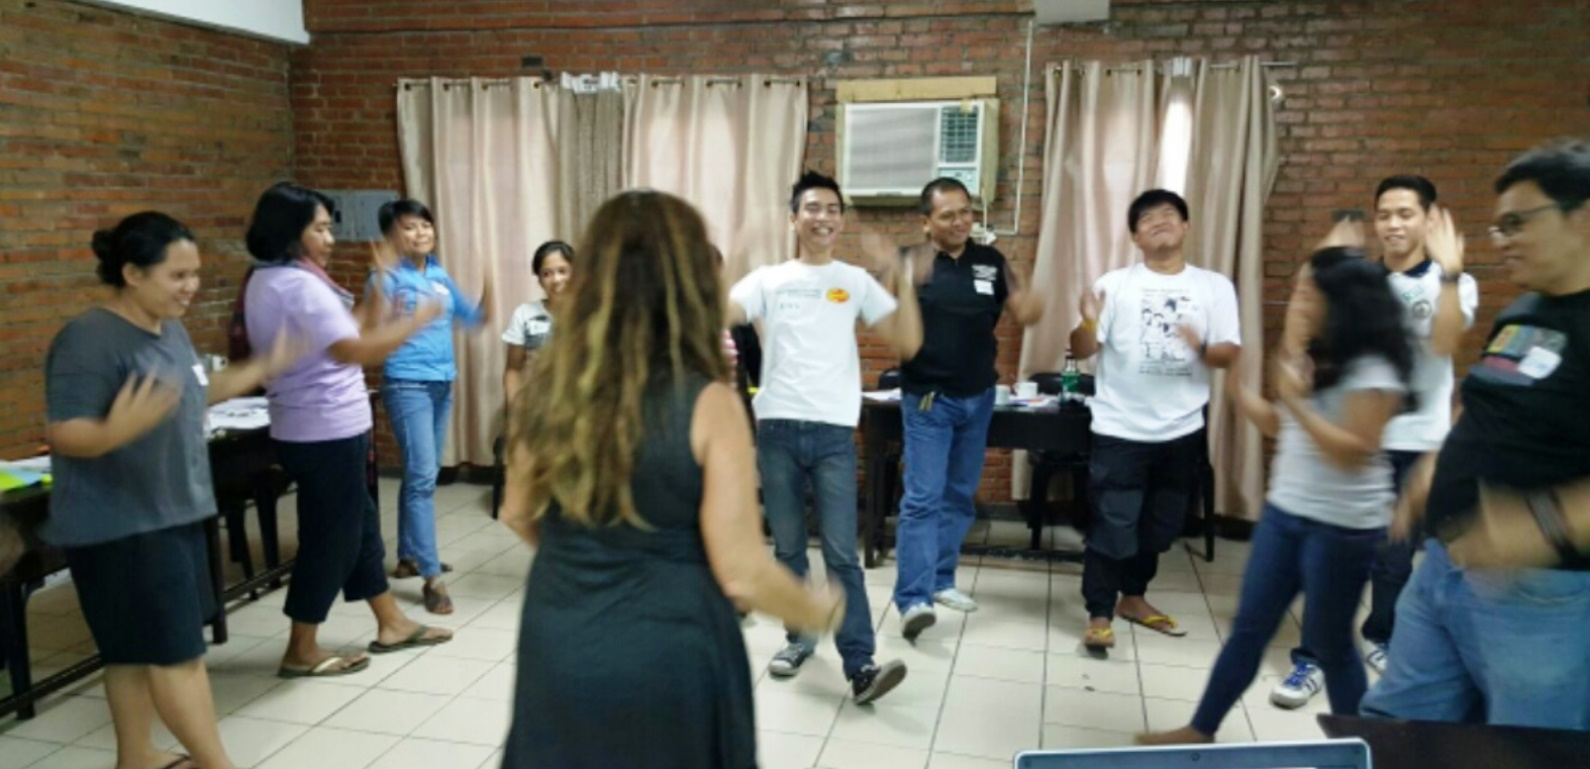 ITC trauma and resilience training in the Philippines. Photo: courtesy